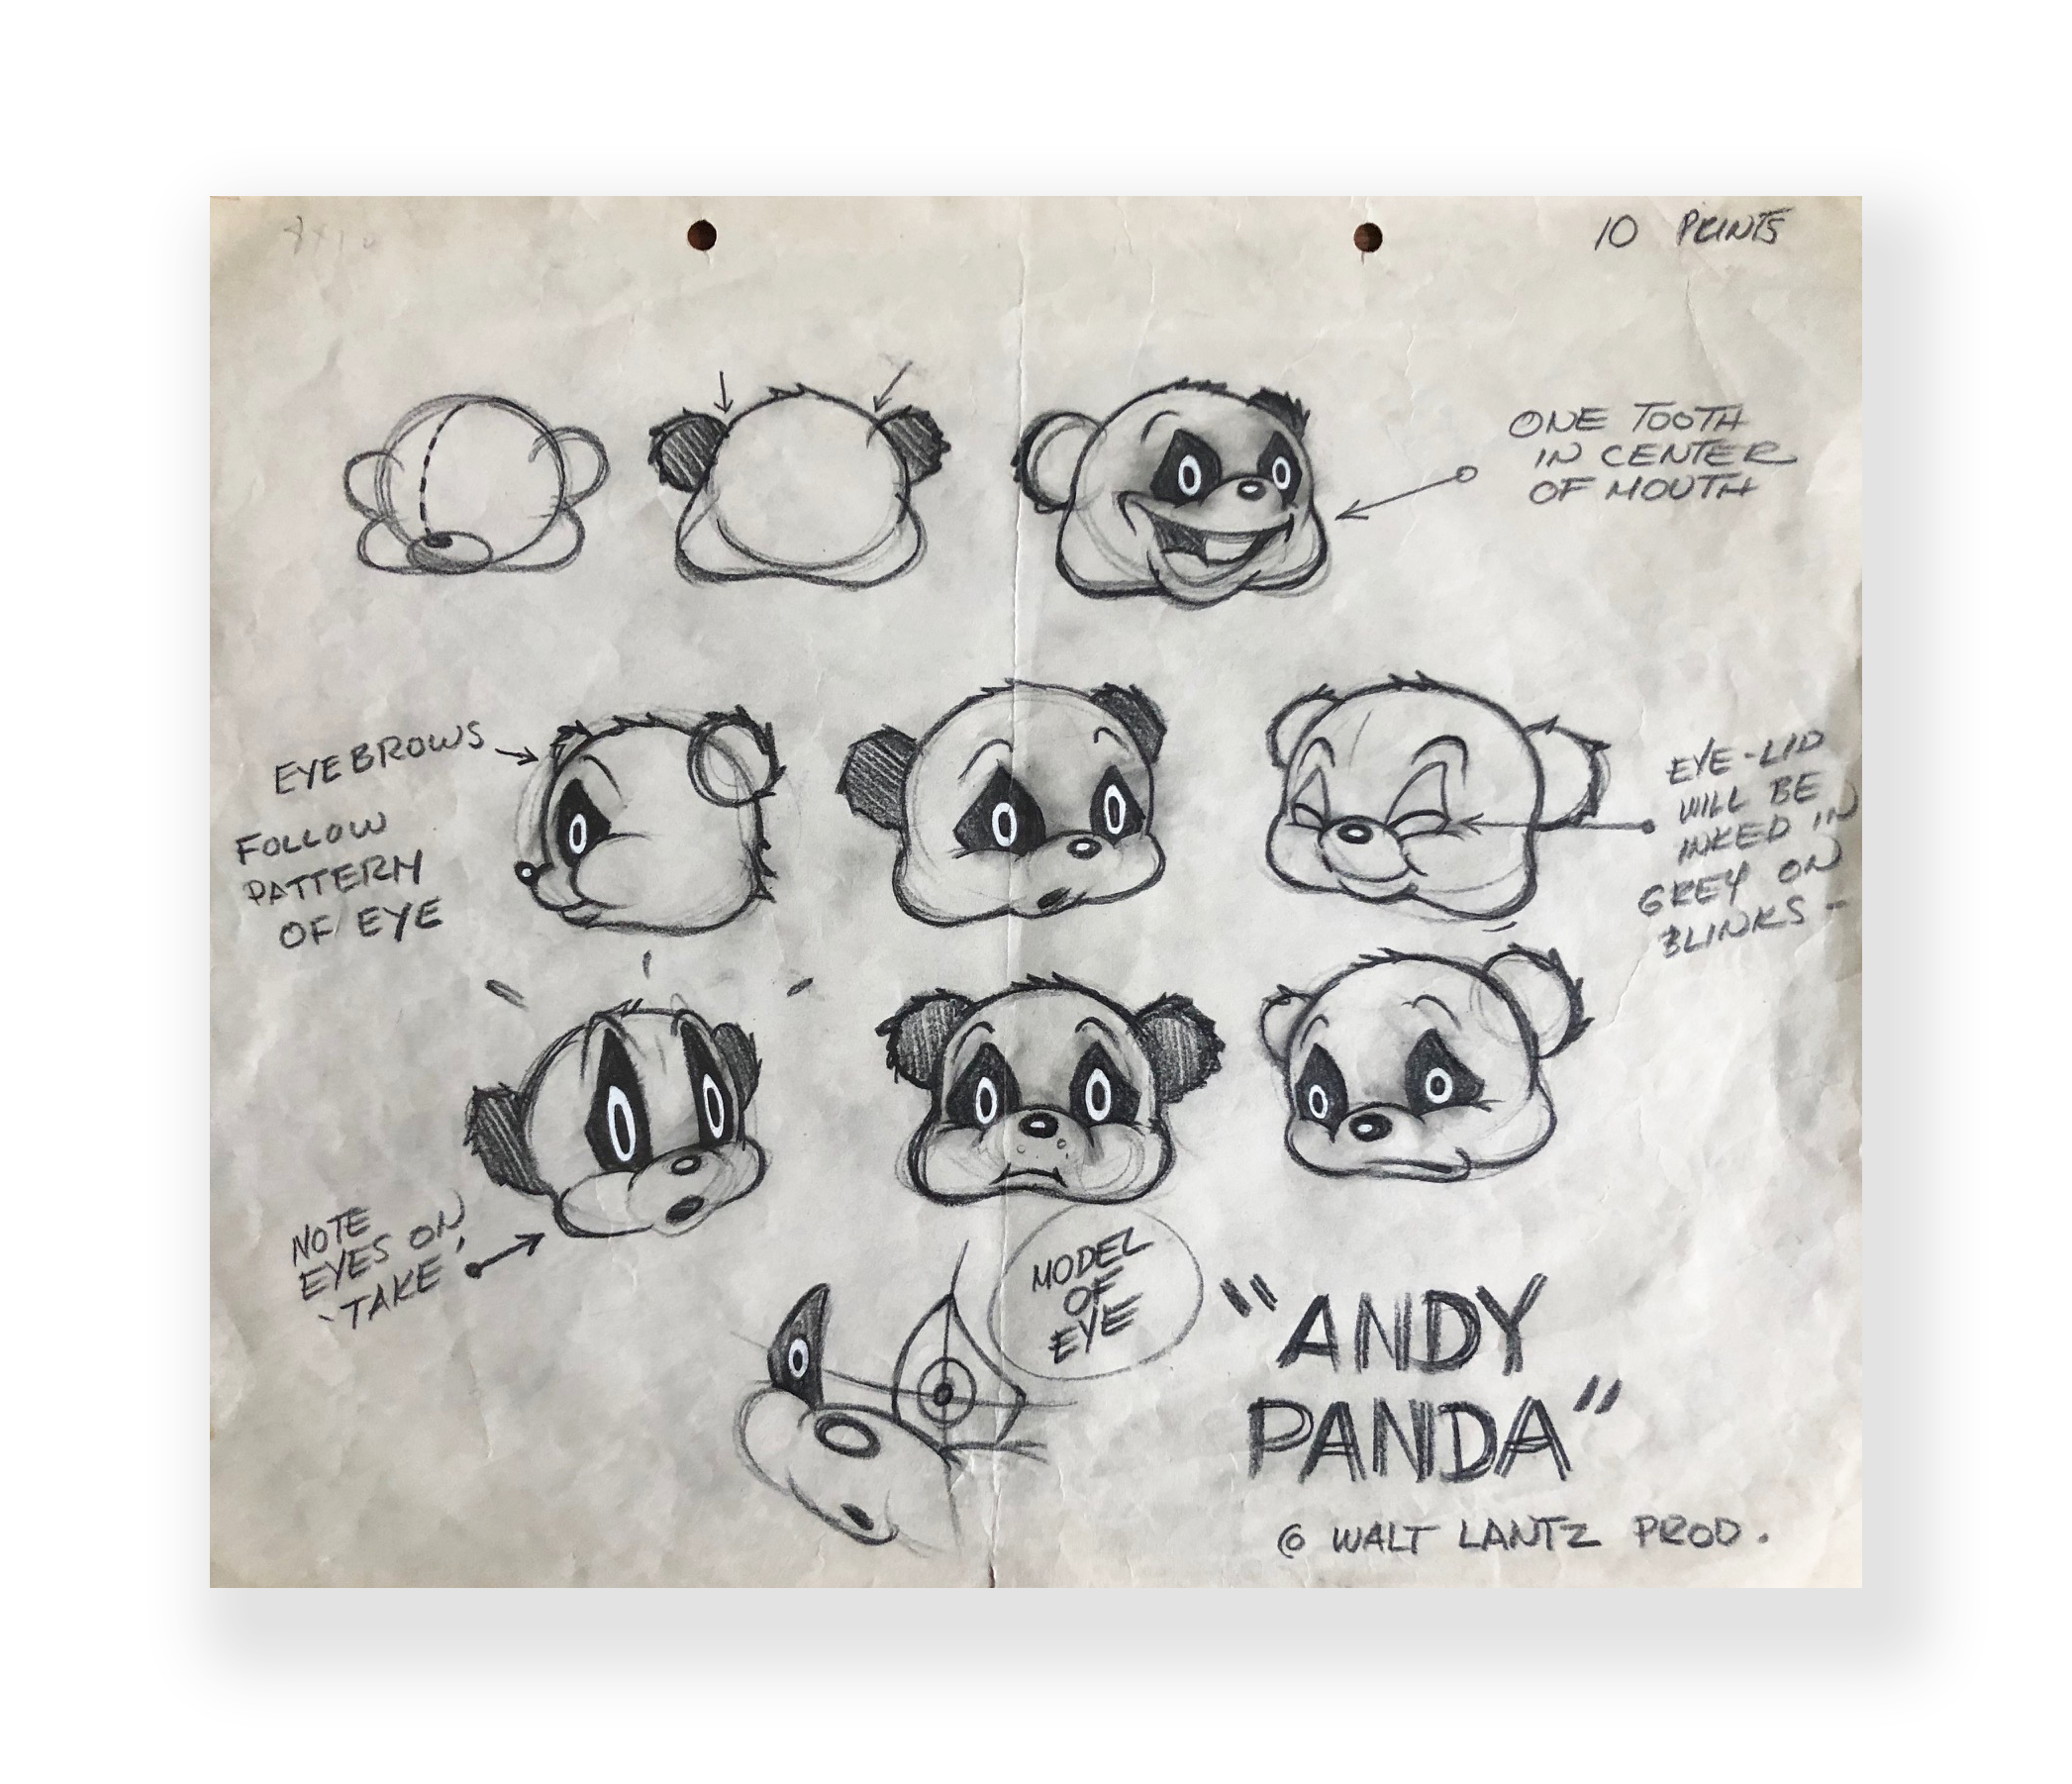 Andy Panda  Production Model sheet  Original vintage illustration on paper  10.5 x 12 inches  Walter Lantz Studios  Circa 1940's